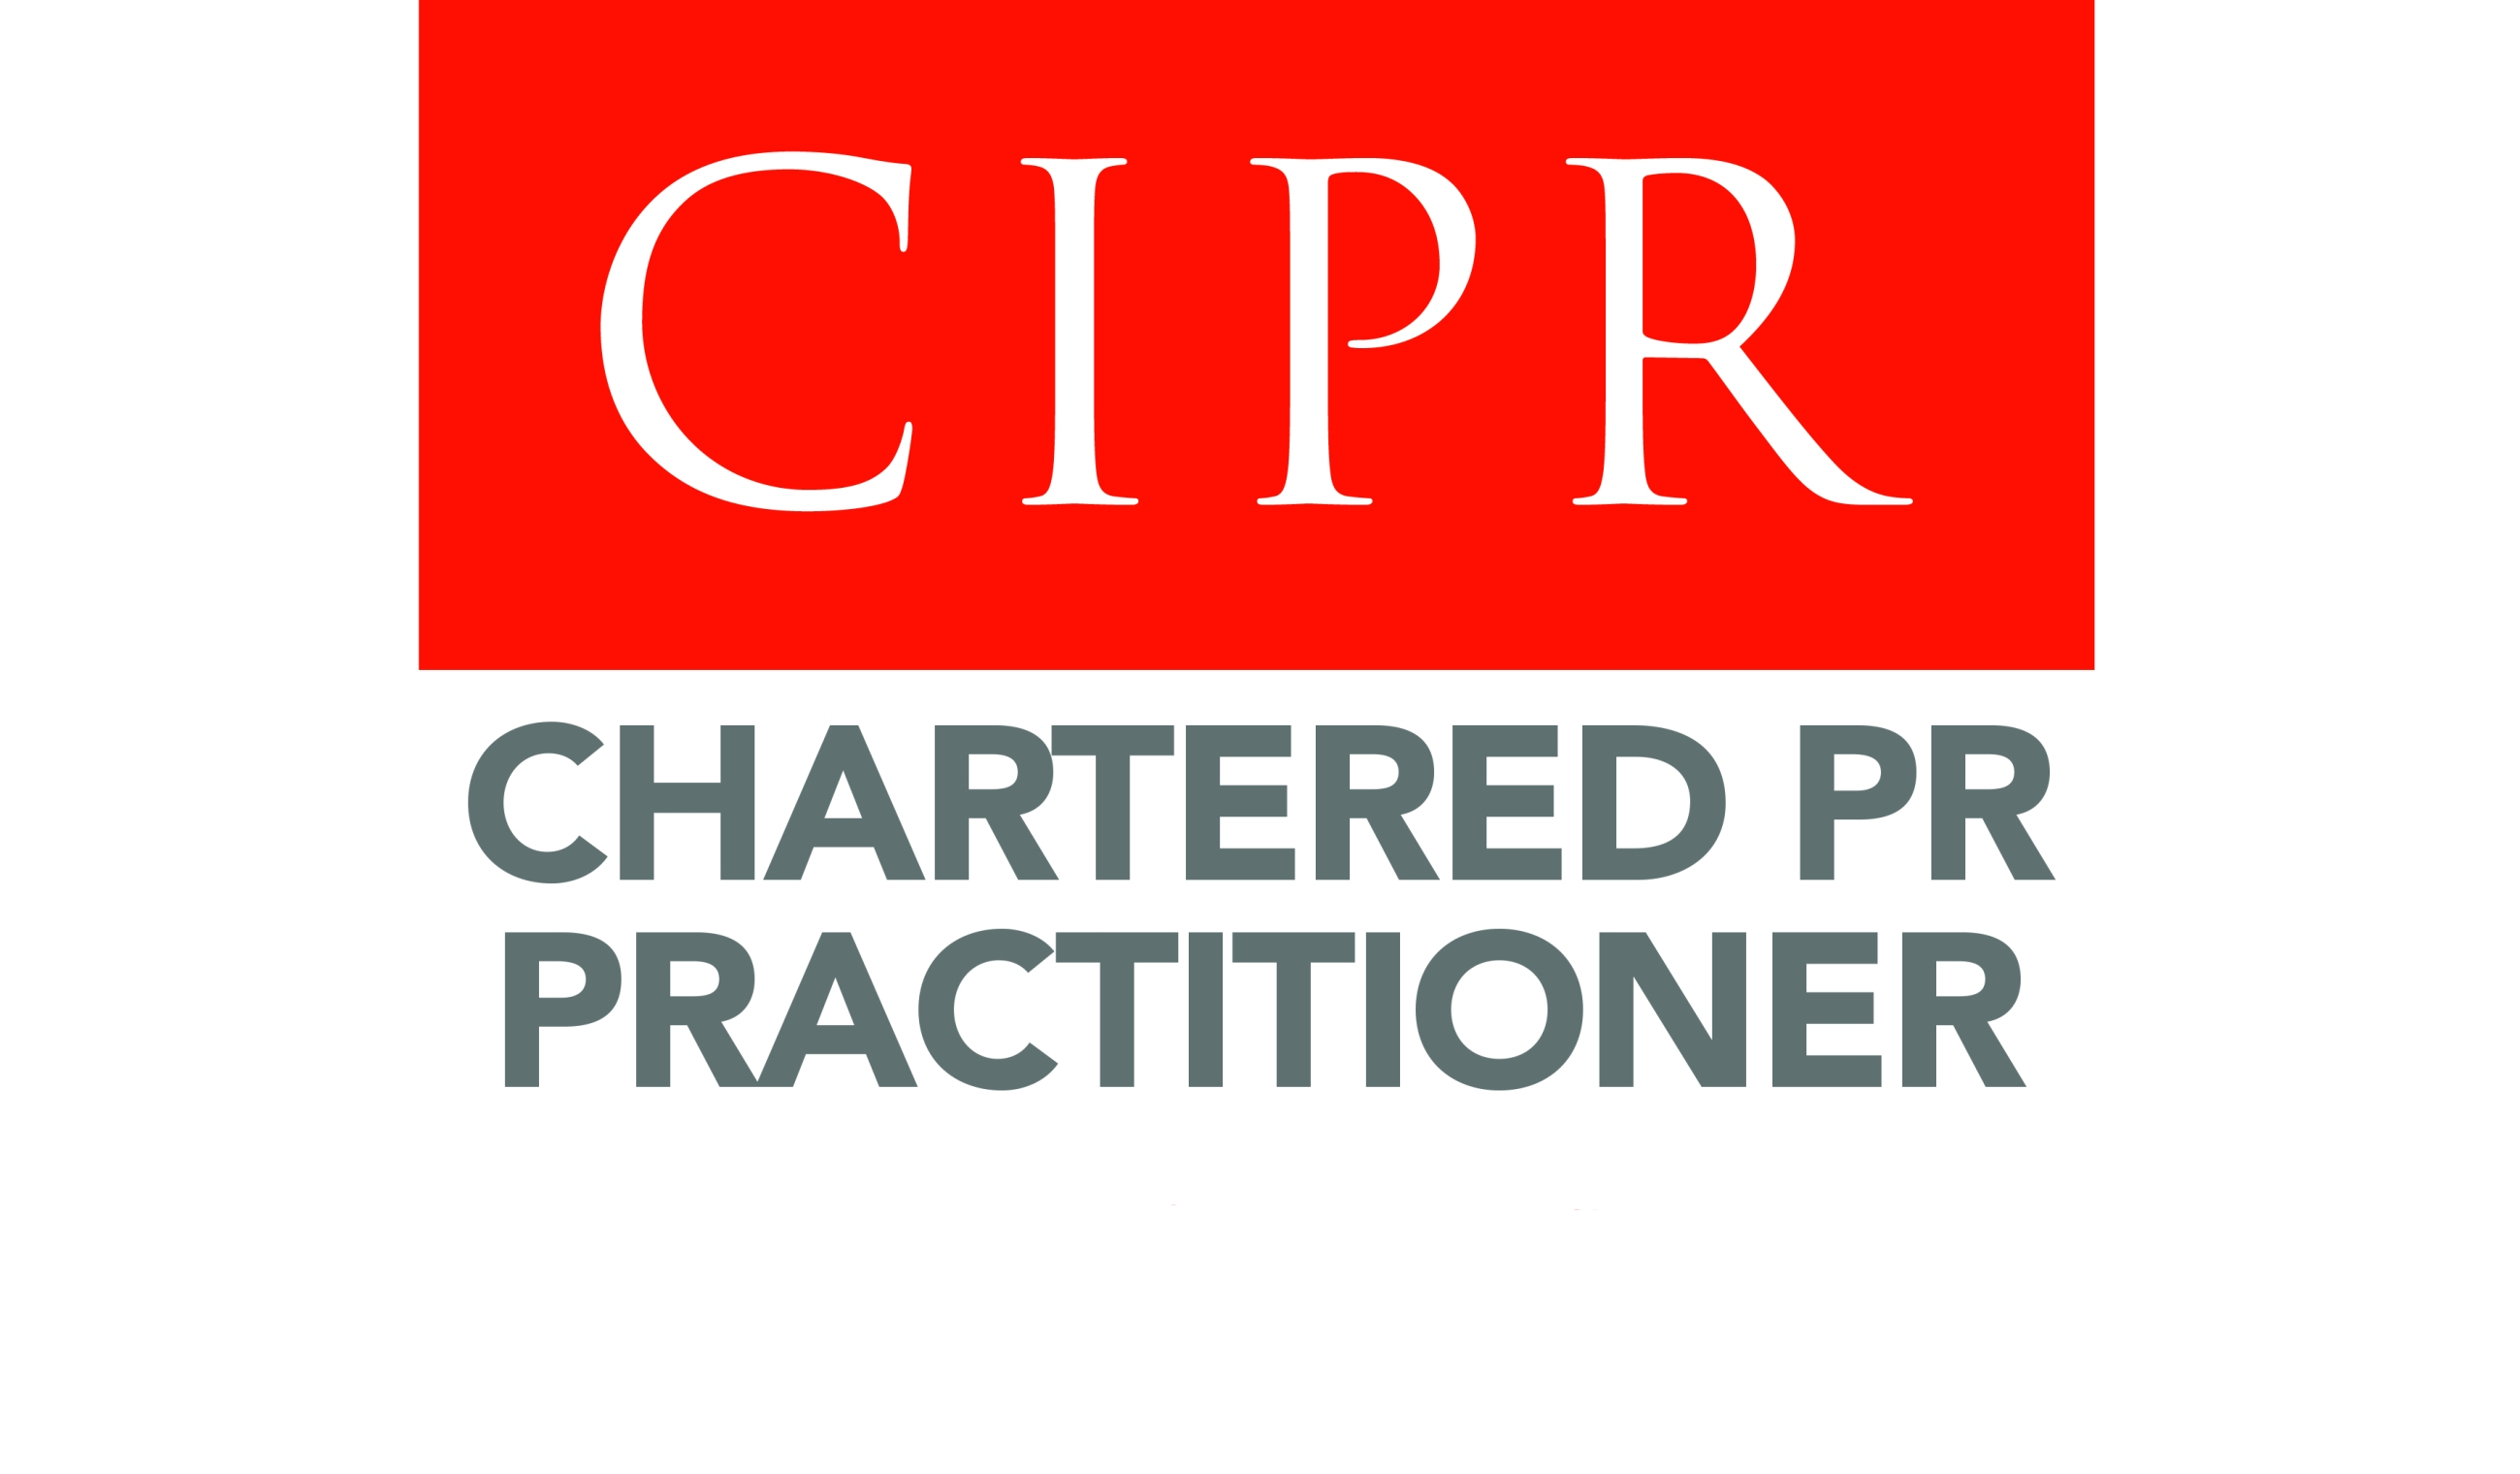 CIPR Chartered PR Practitioner